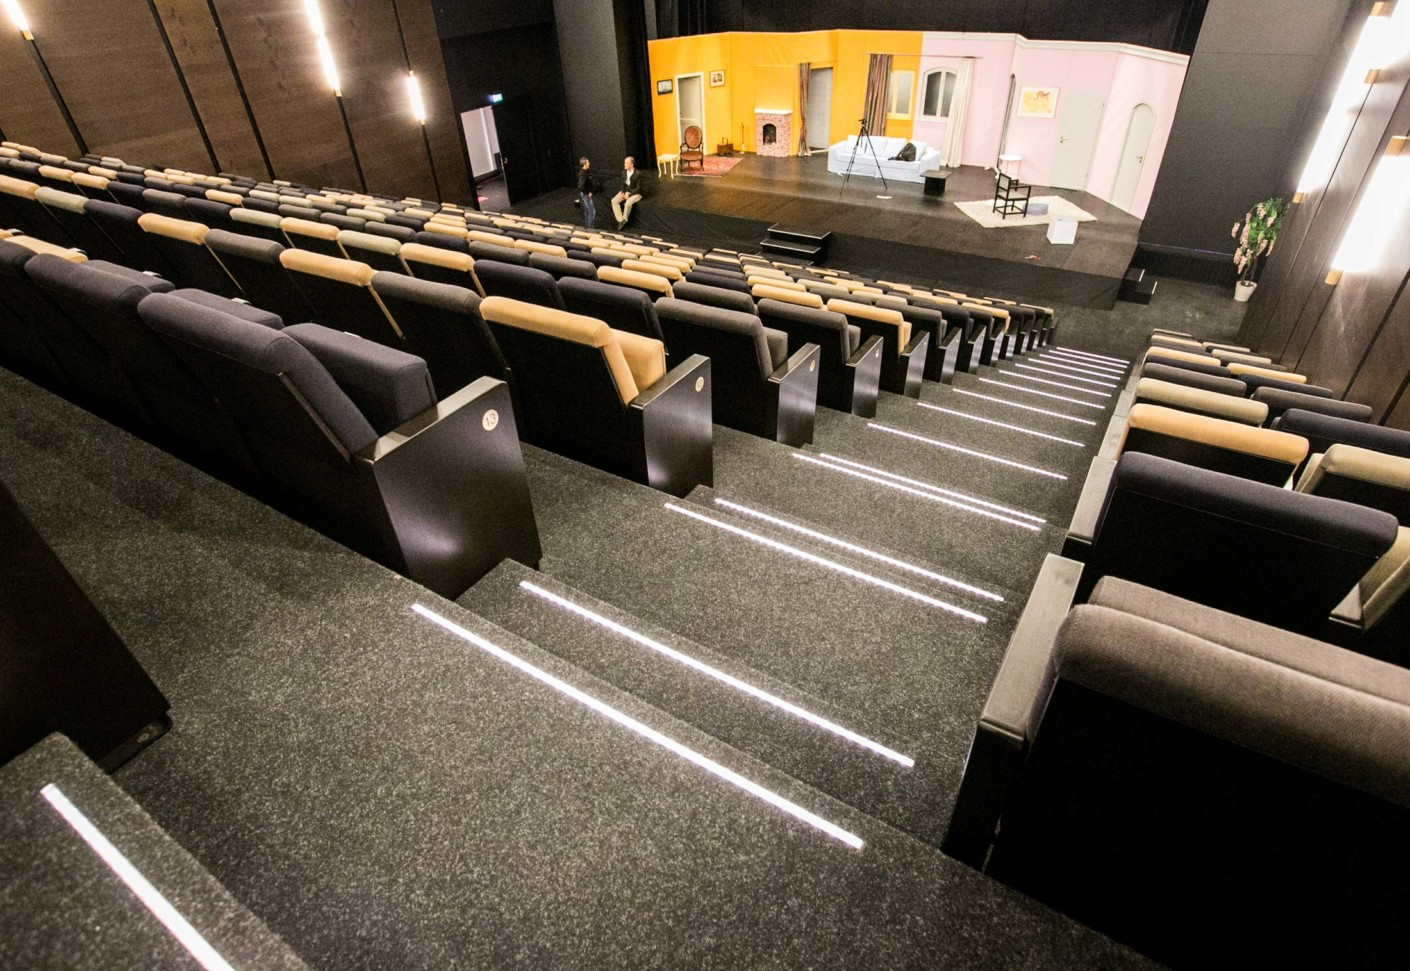 oststadt theater mannheim von findeisen stylepark. Black Bedroom Furniture Sets. Home Design Ideas